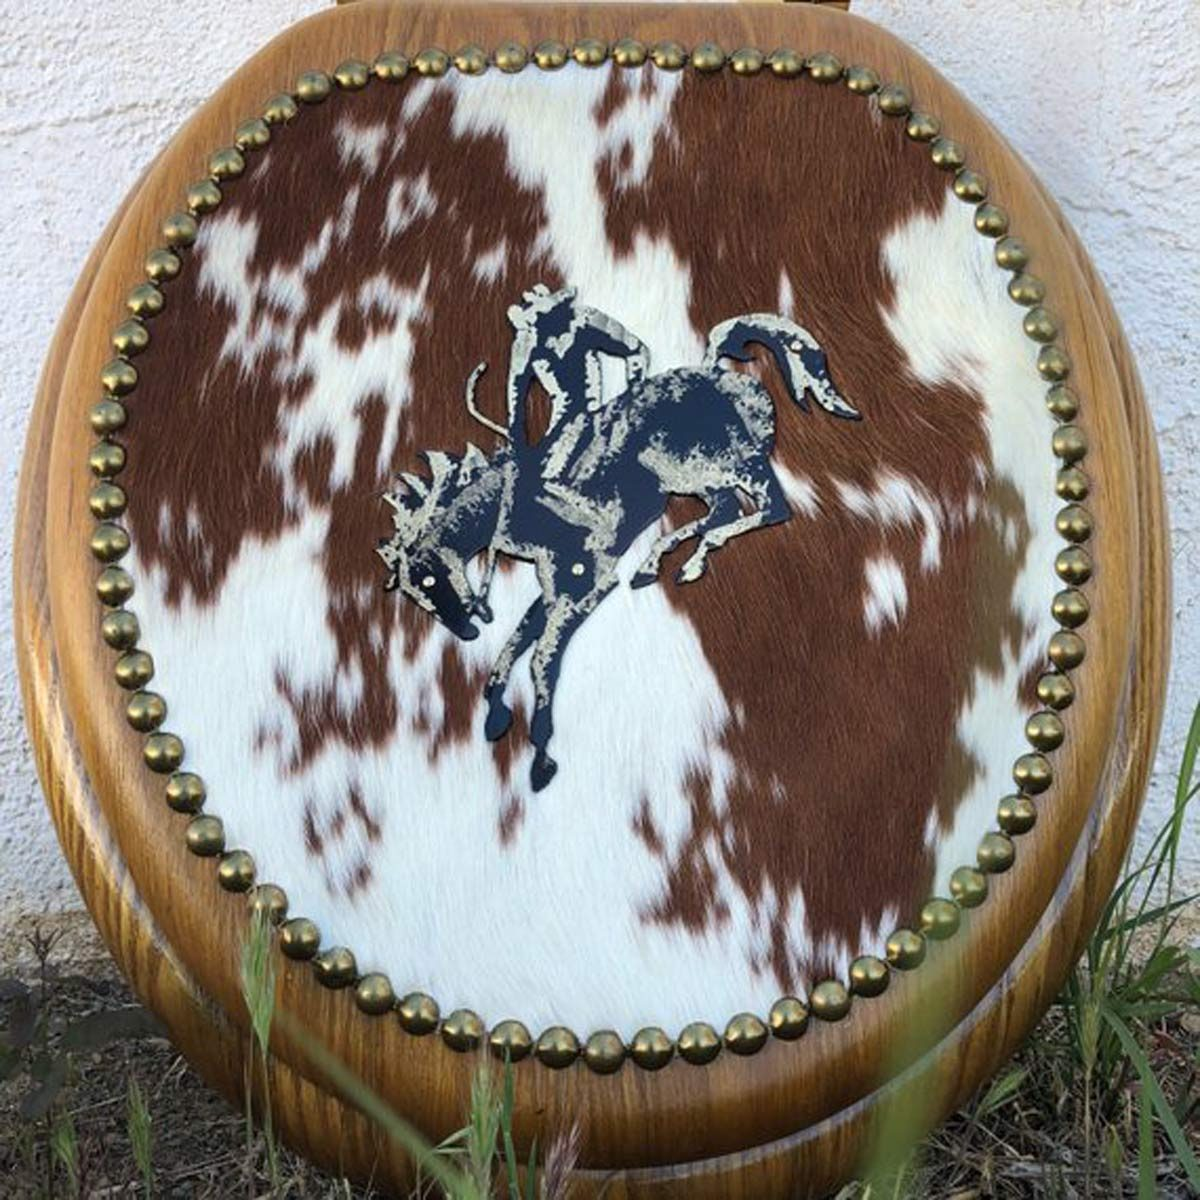 Enjoyable 12 Toilet Seat Lids You Have To See To Believe The Family Uwap Interior Chair Design Uwaporg